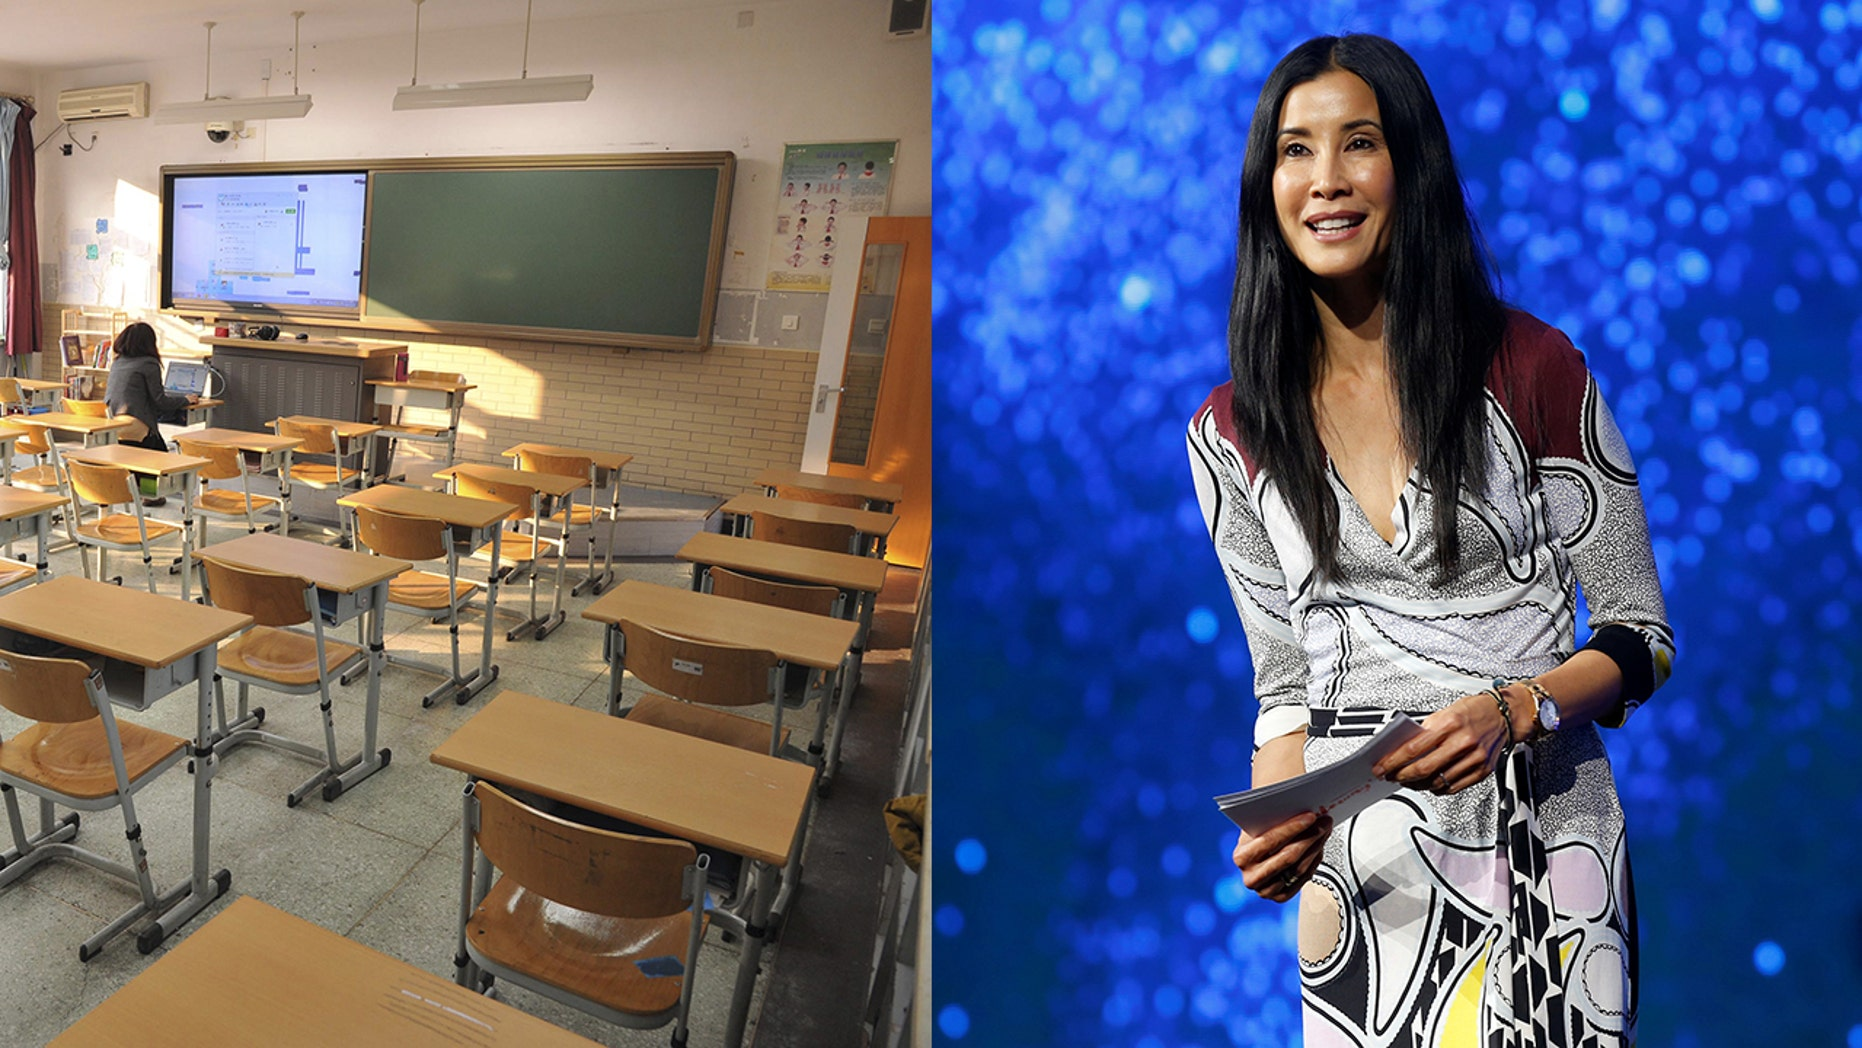 """CNN debuts """"This is Sex with Lisa Ling"""" featuring graphic sexual conversations happening in schools."""